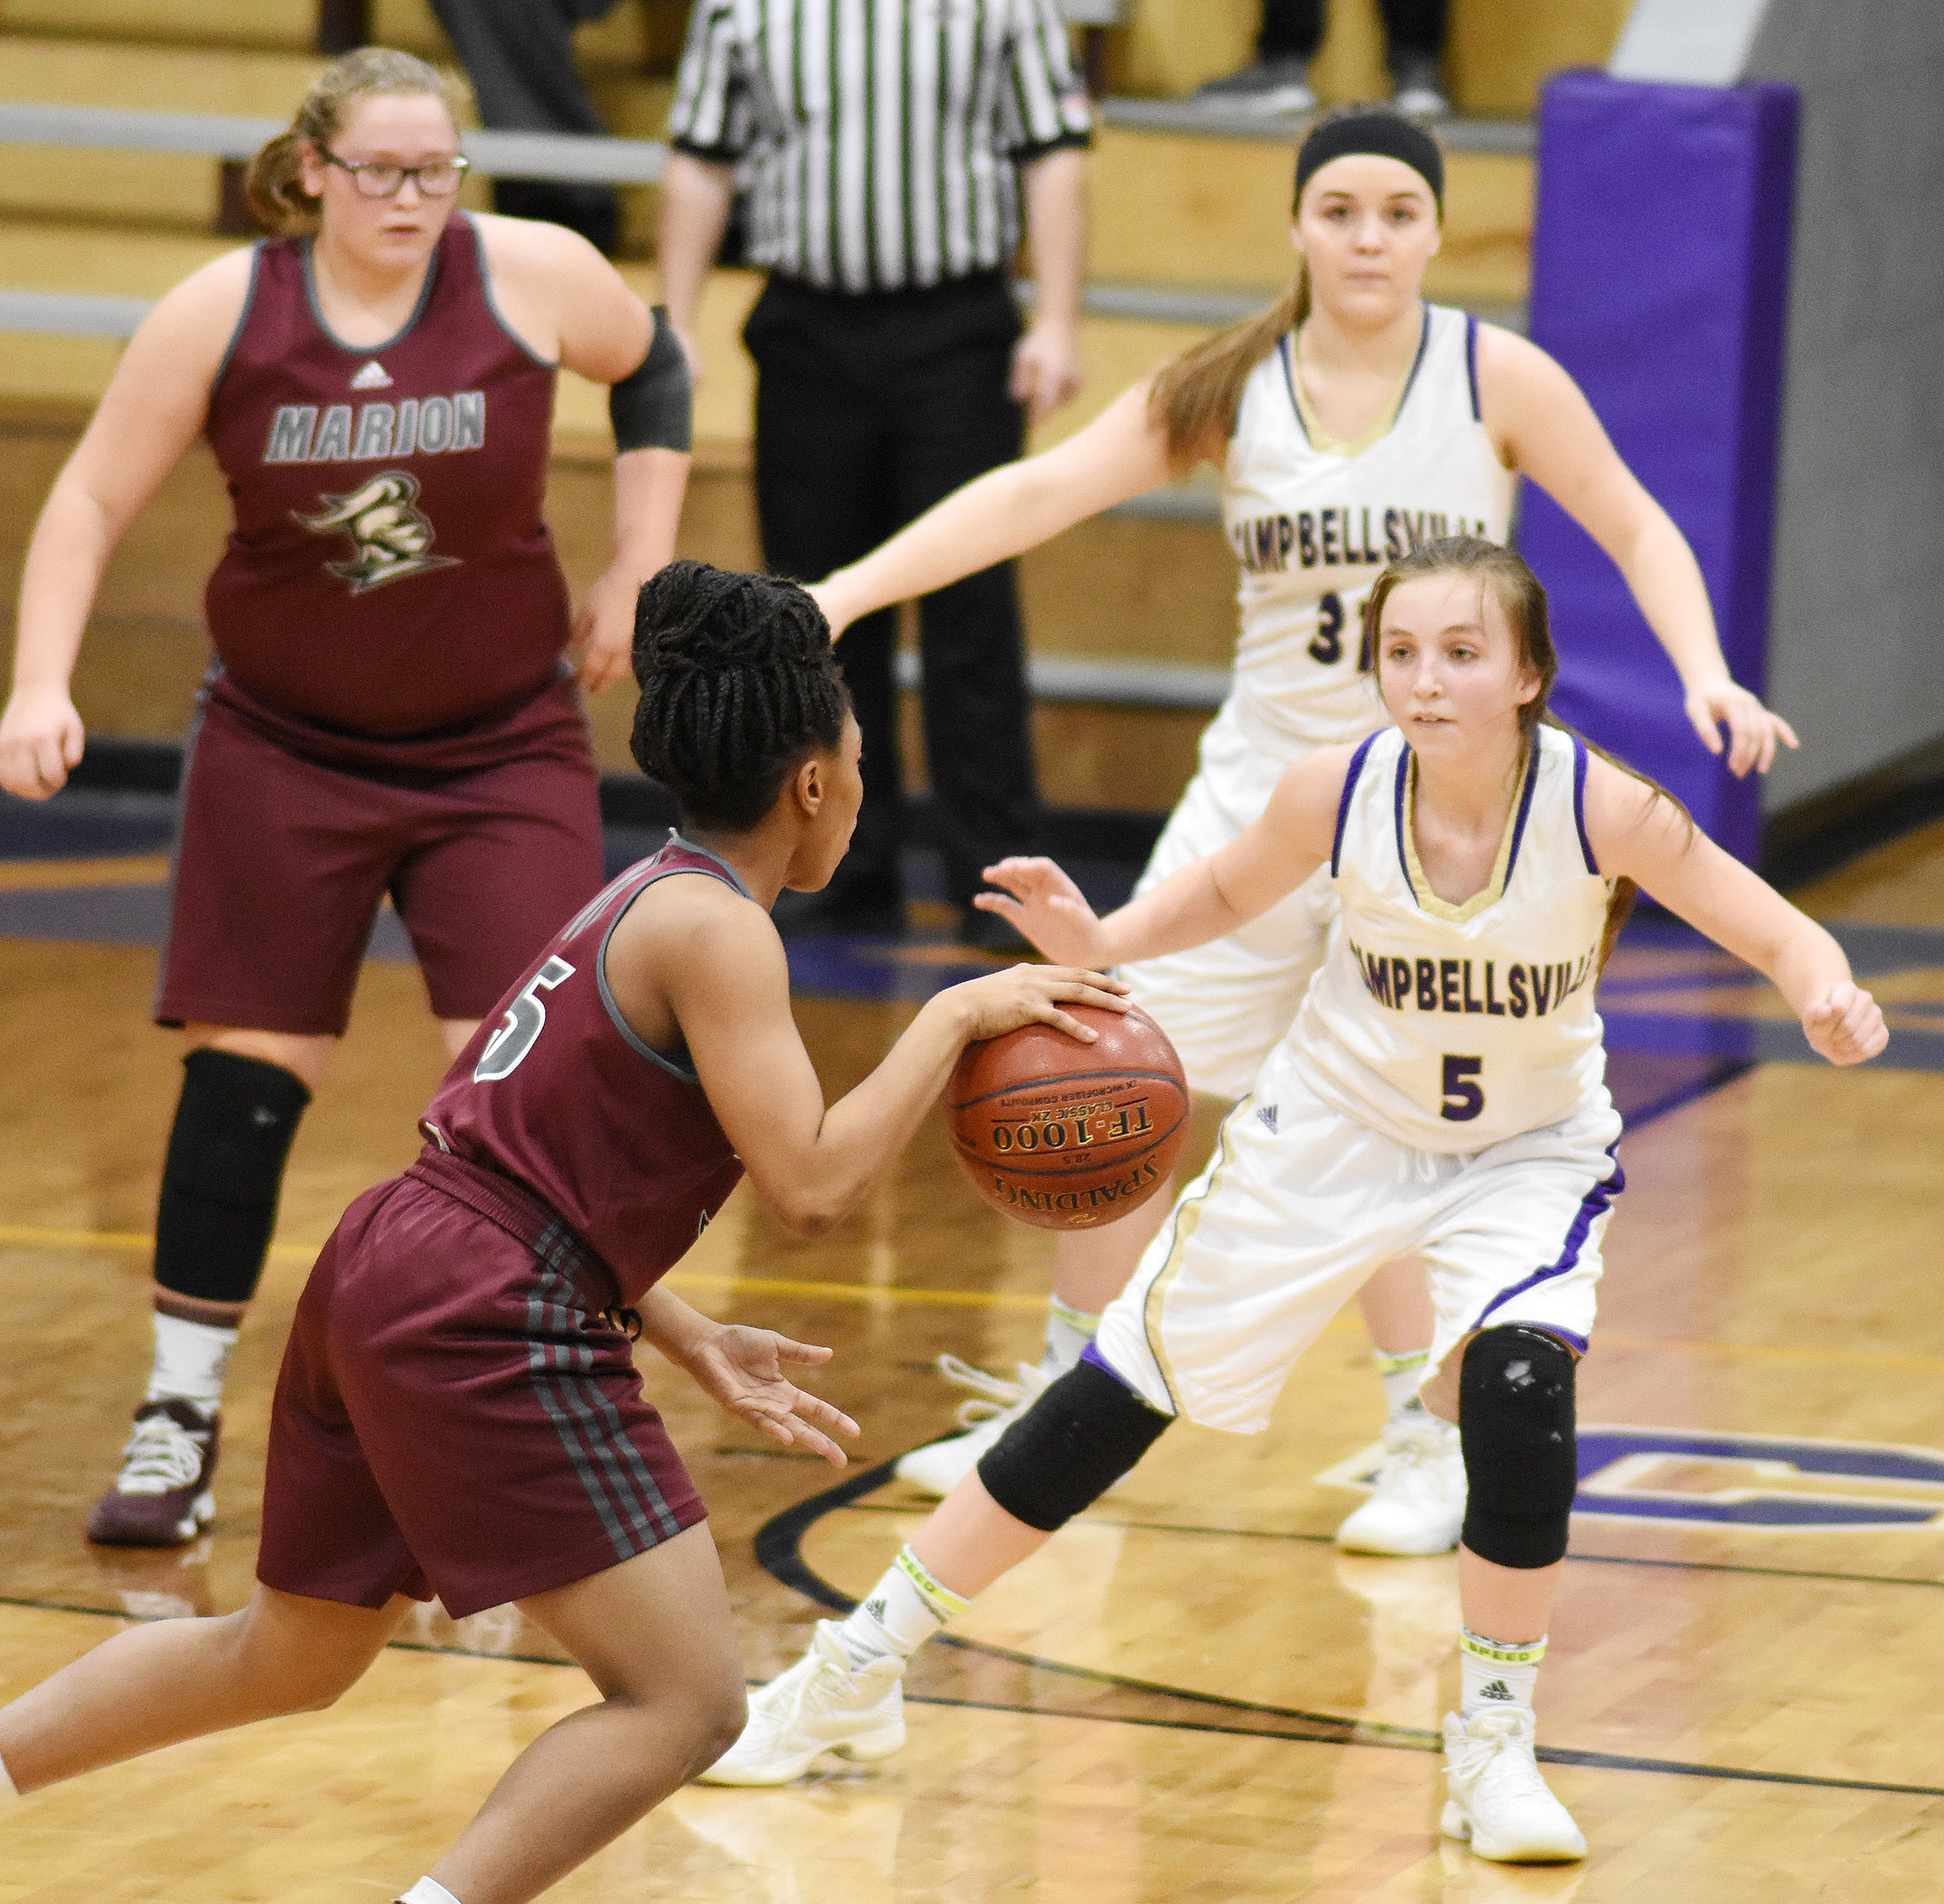 Campbellsville Middle School eighth-grader Lainey Watson plays defense.